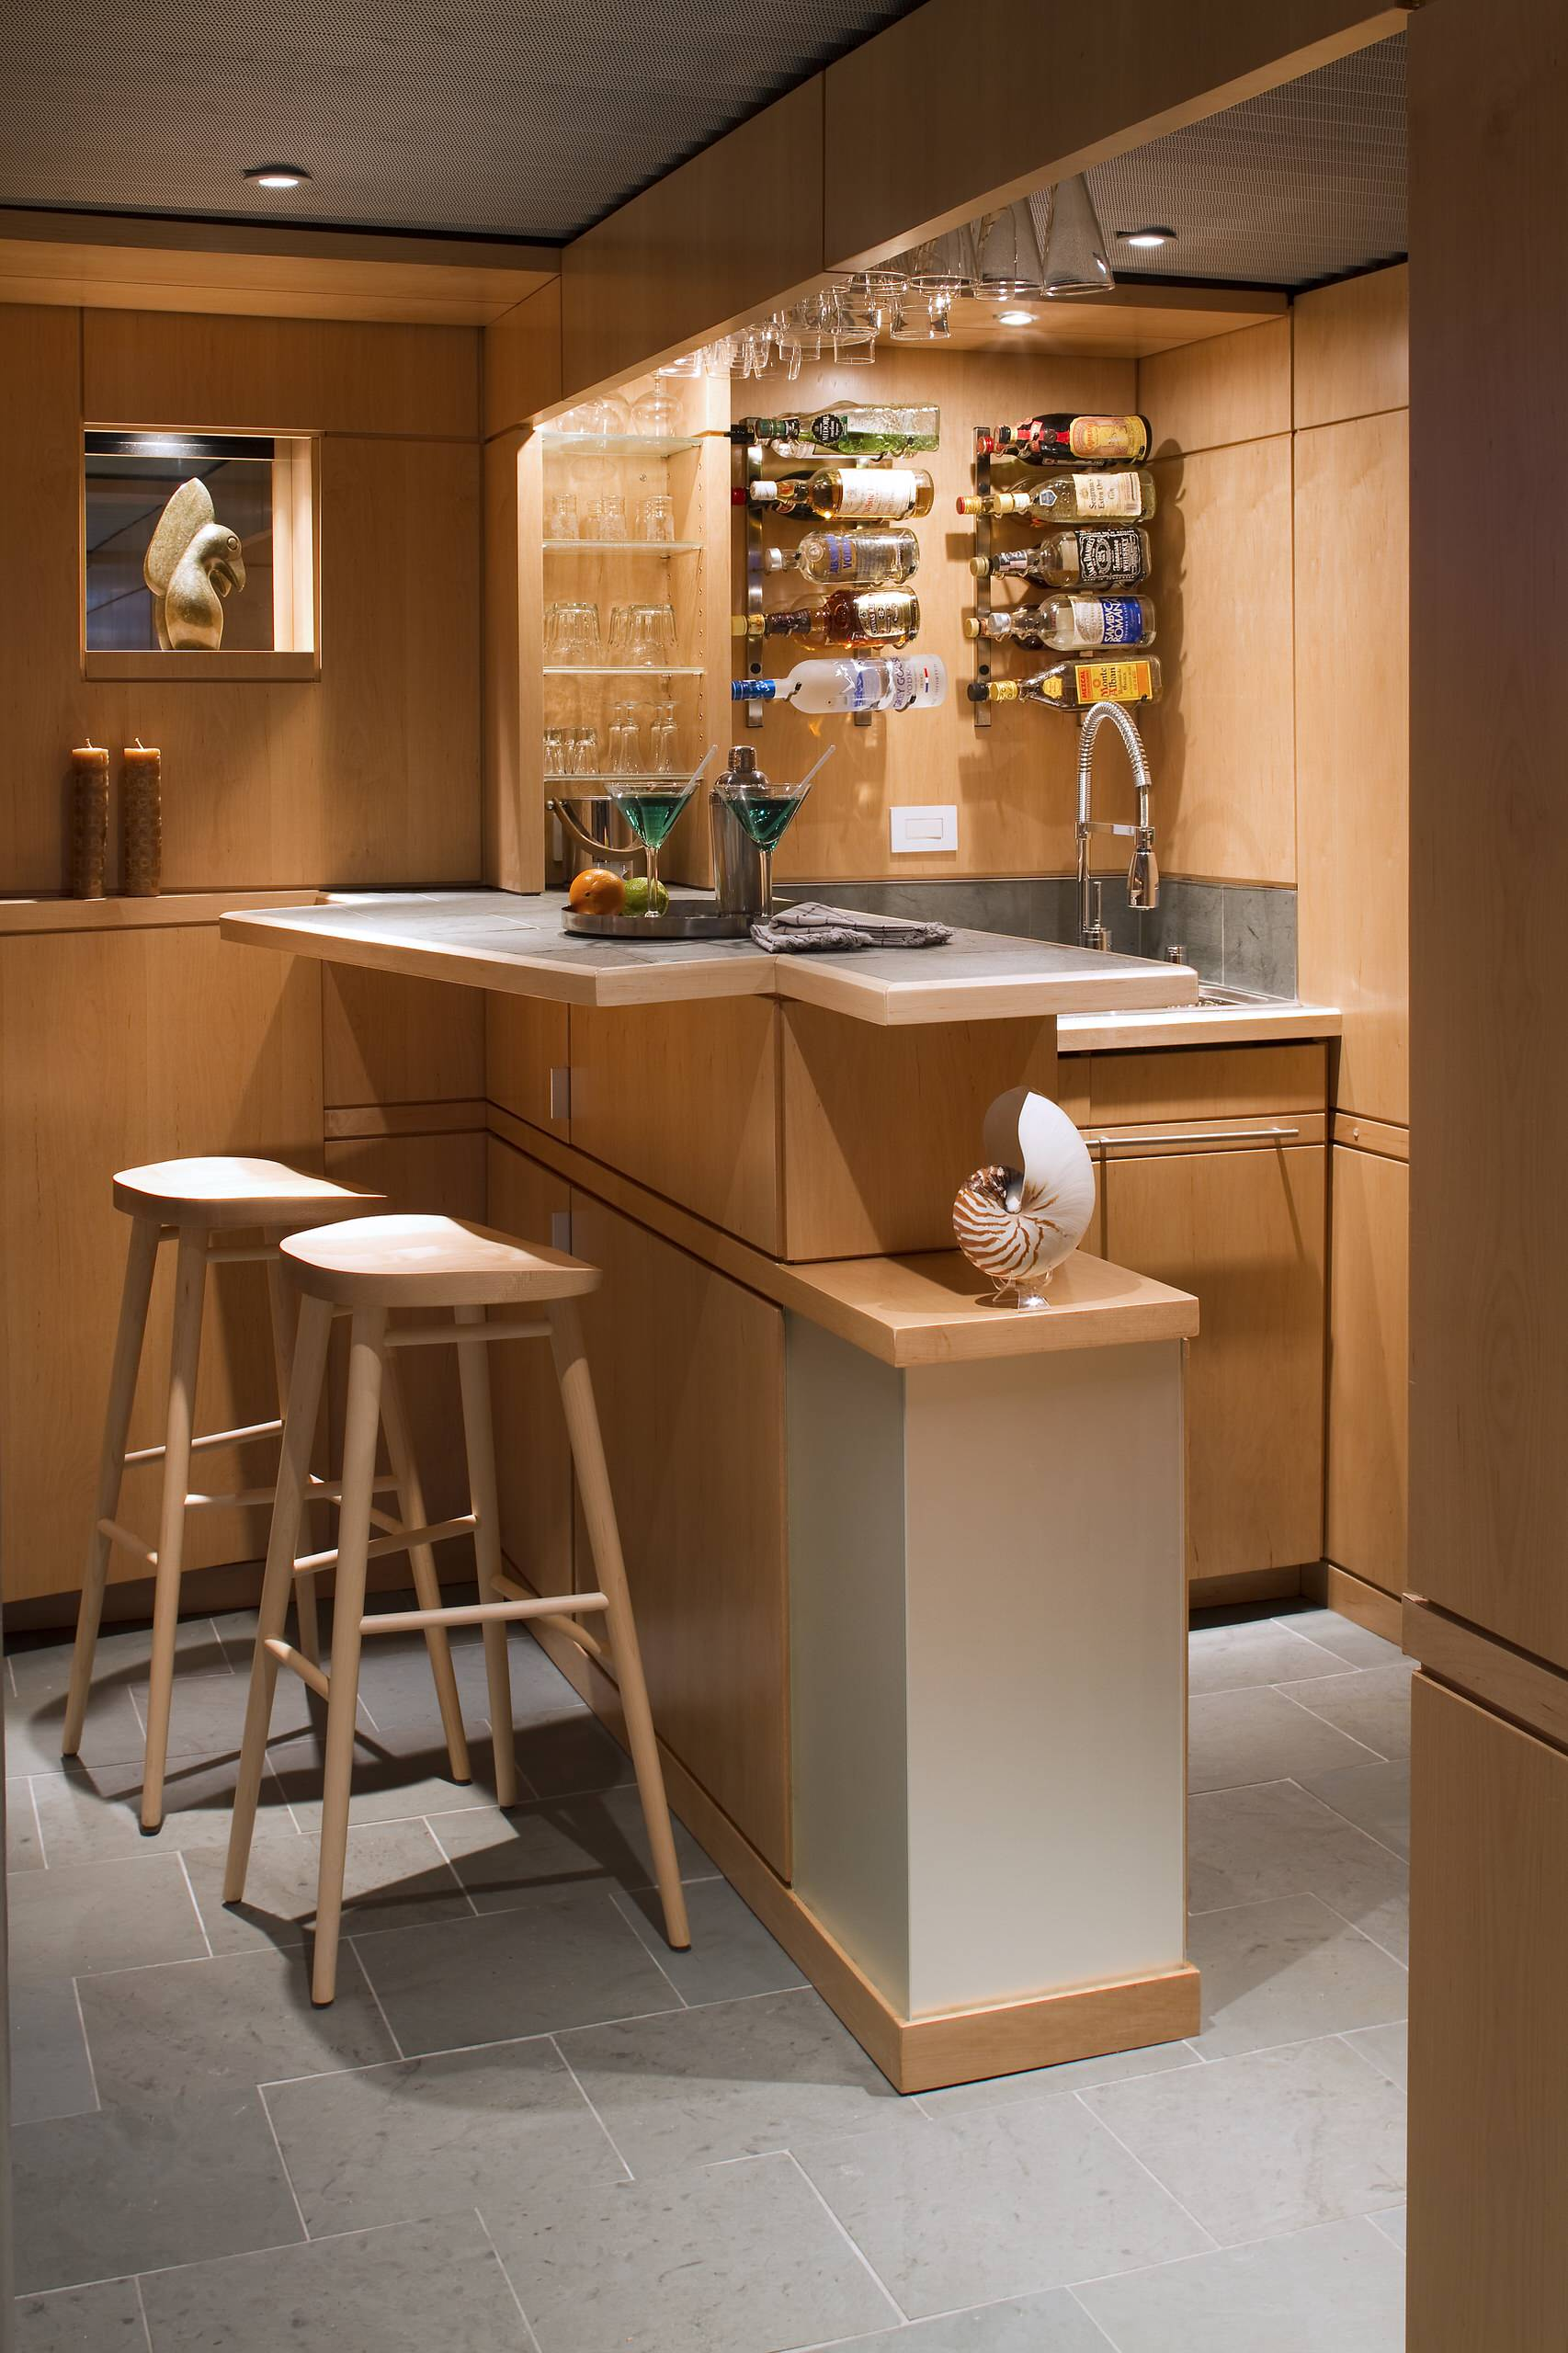 75 Beautiful Small Home Bar Pictures Ideas March 2021 Houzz